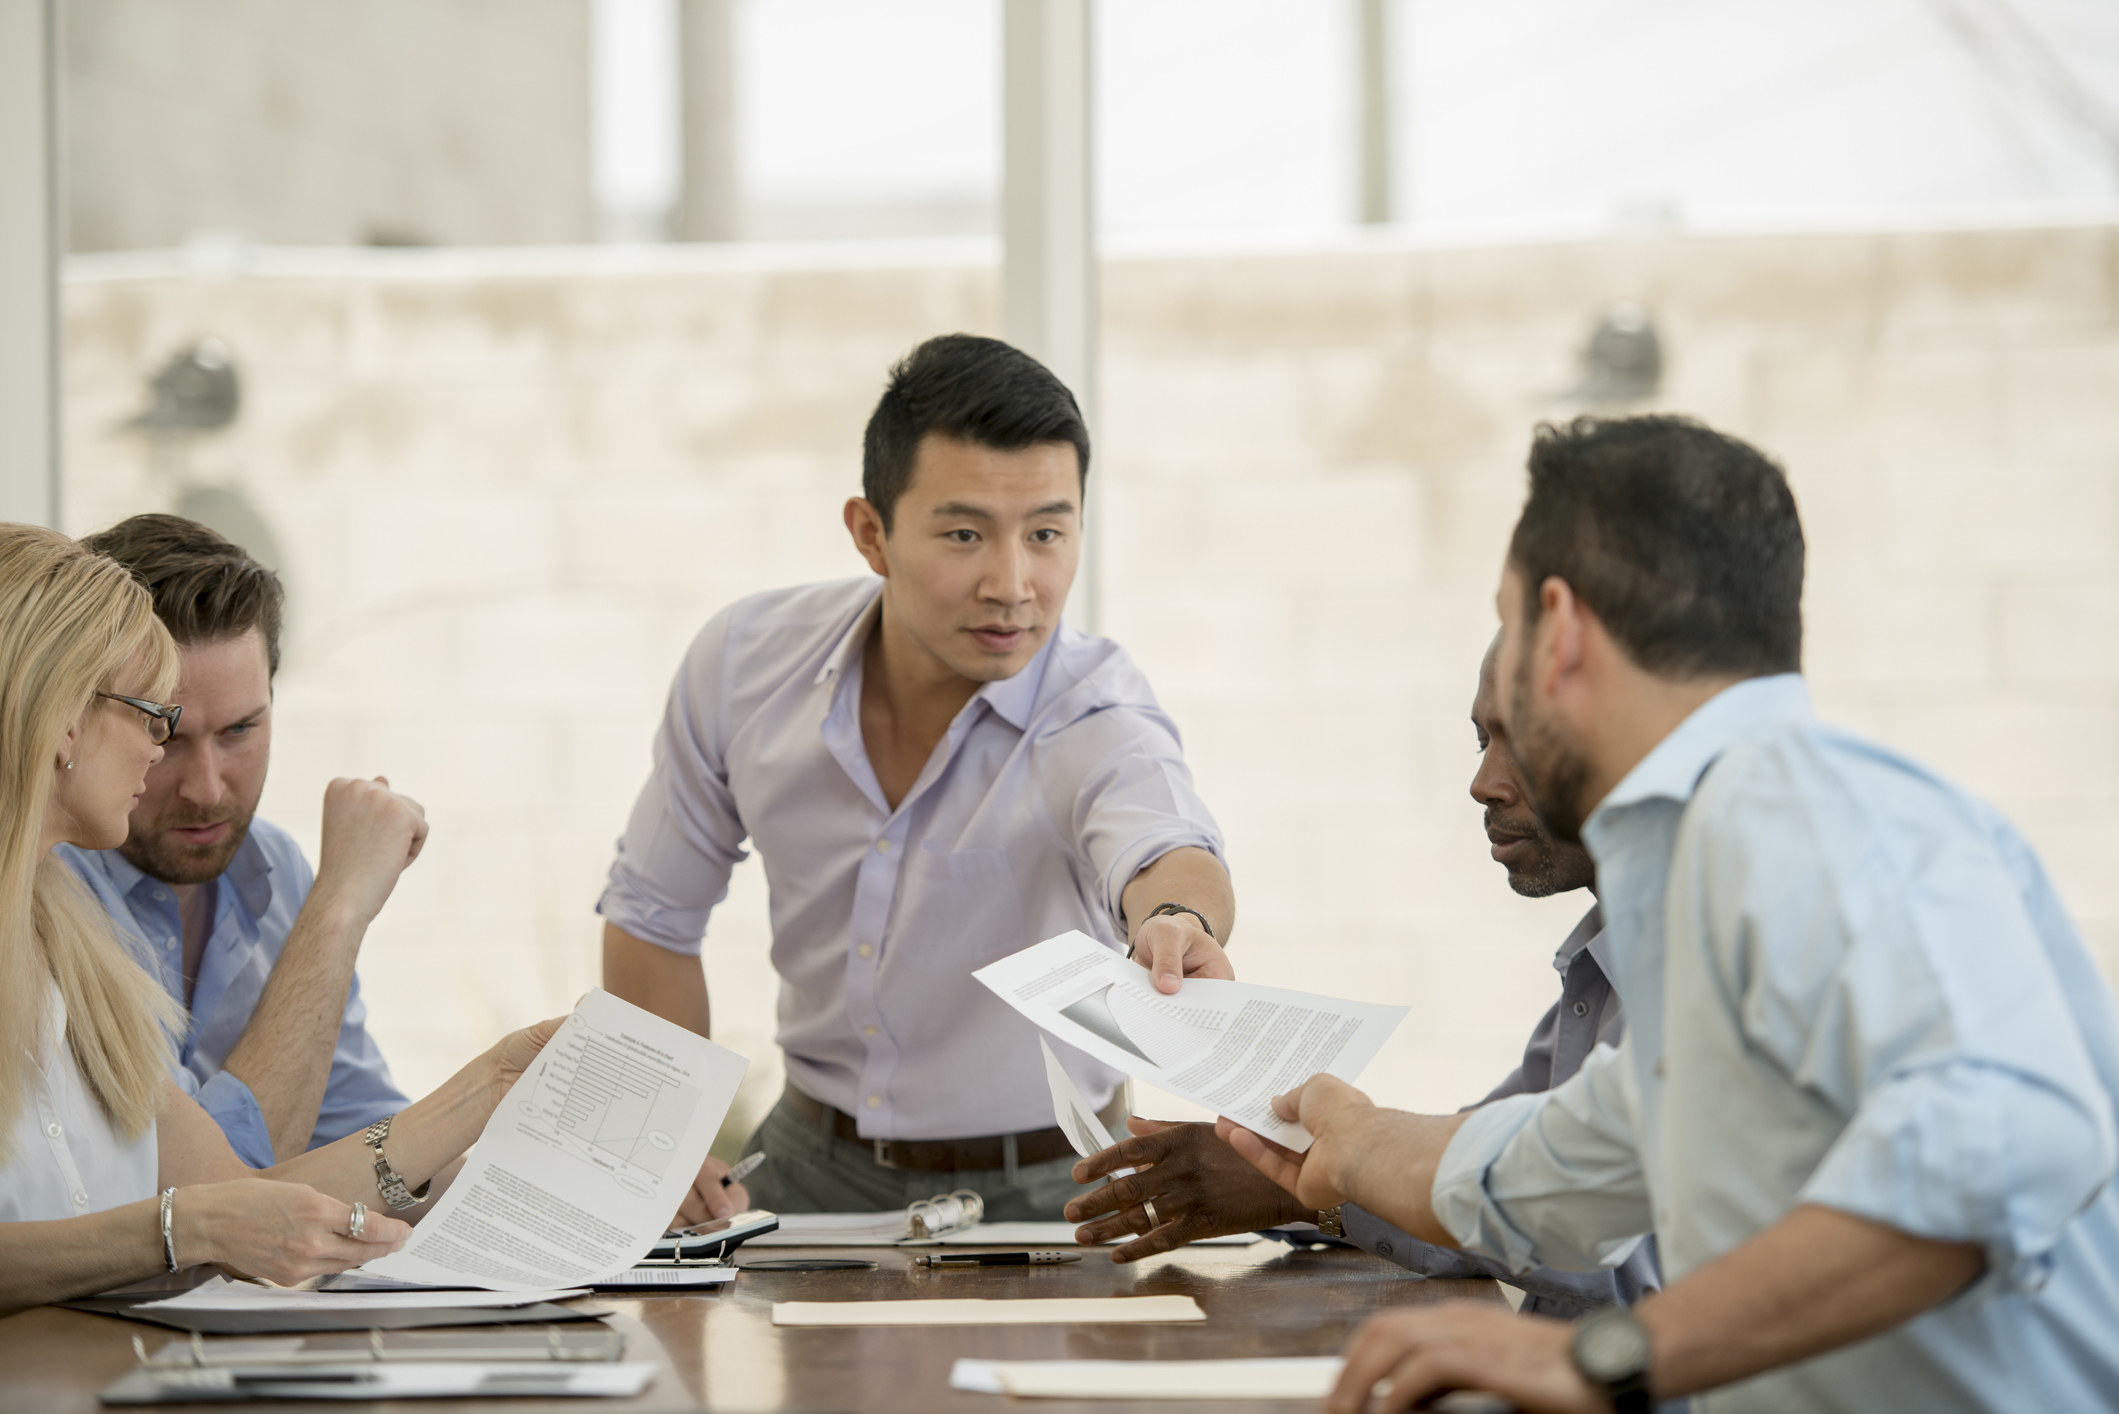 Simu Liu having a discussion about financial data with a multi-ethnic group of business professionals during a boardroom meeting at the office.